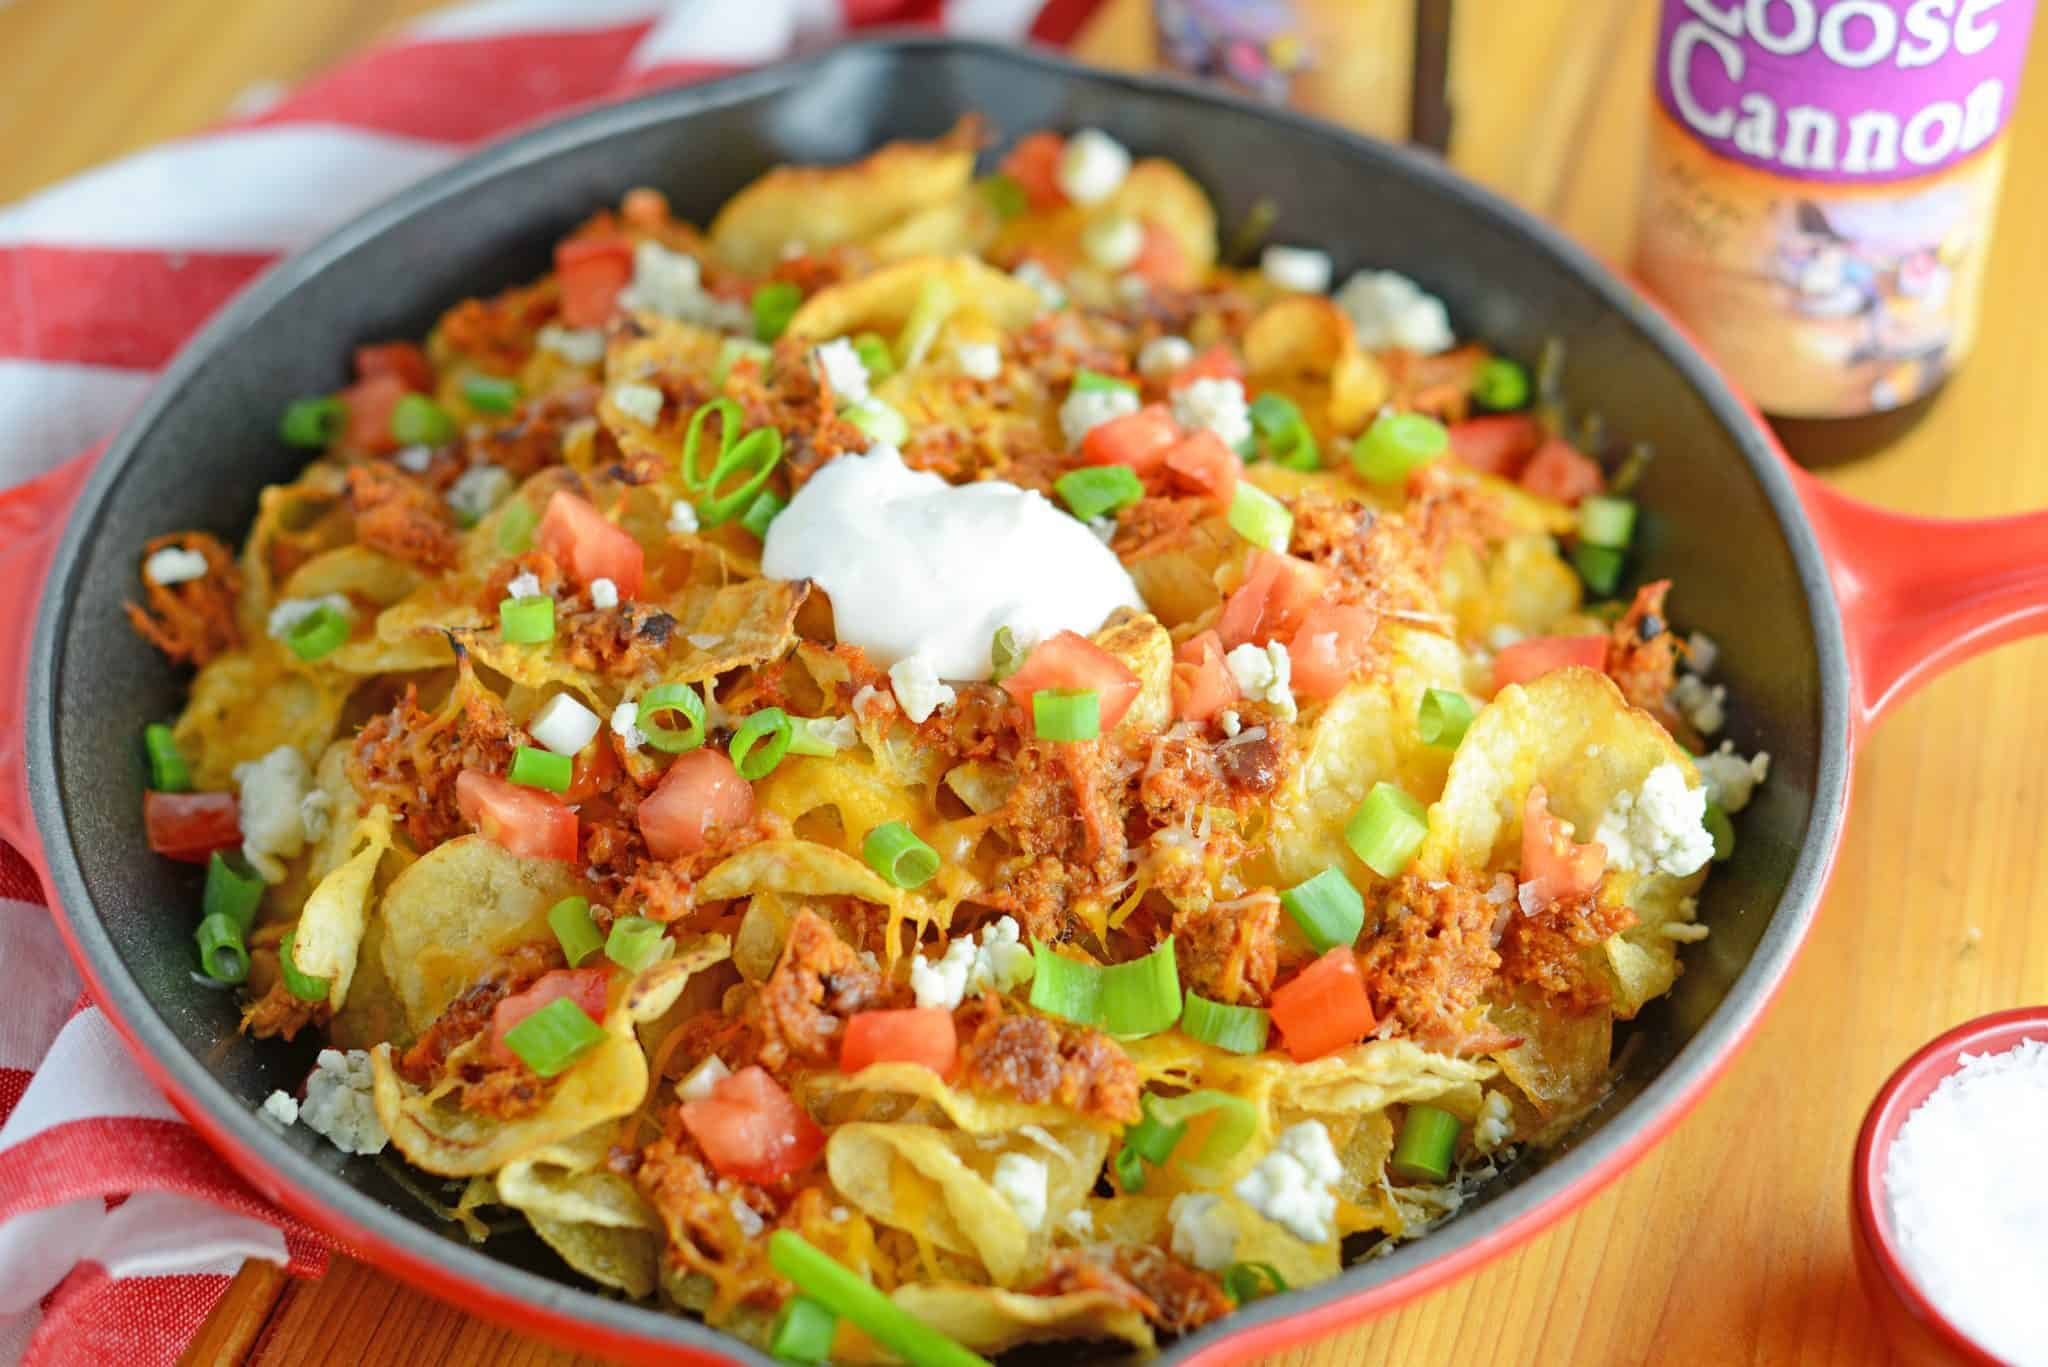 Pulled Pork Potato Chip Nachos are an easy appetizer or meal that your whole family will love made with kettle cooked potato chips and zesty pulled pork!